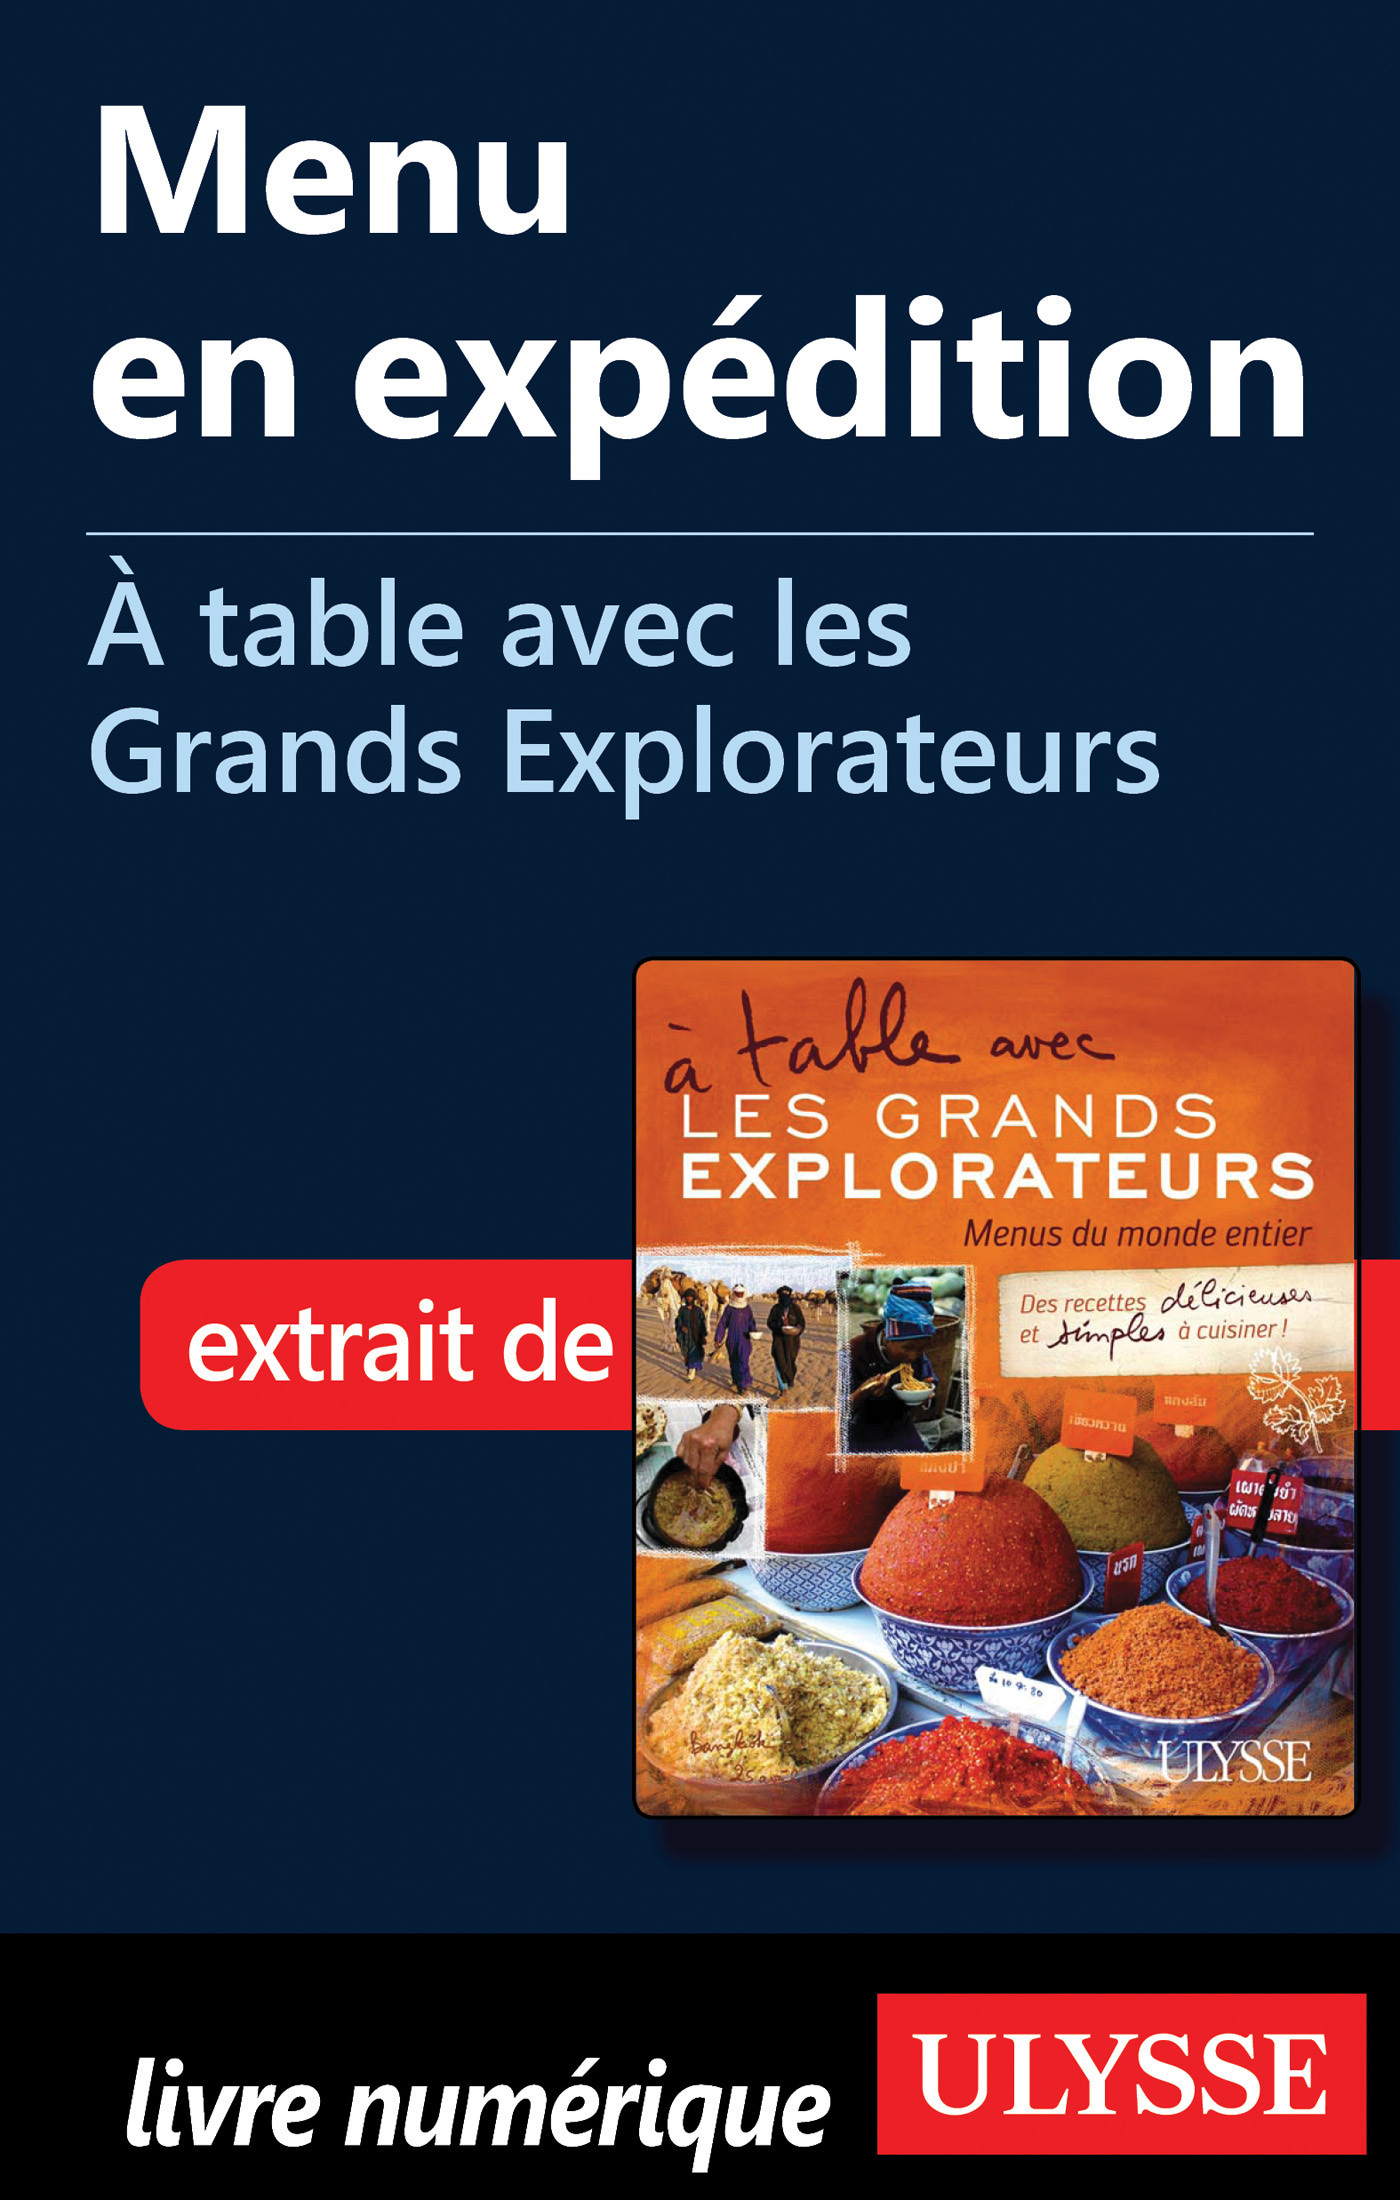 Menu en expédition - A table avec les Grands Explorateurs